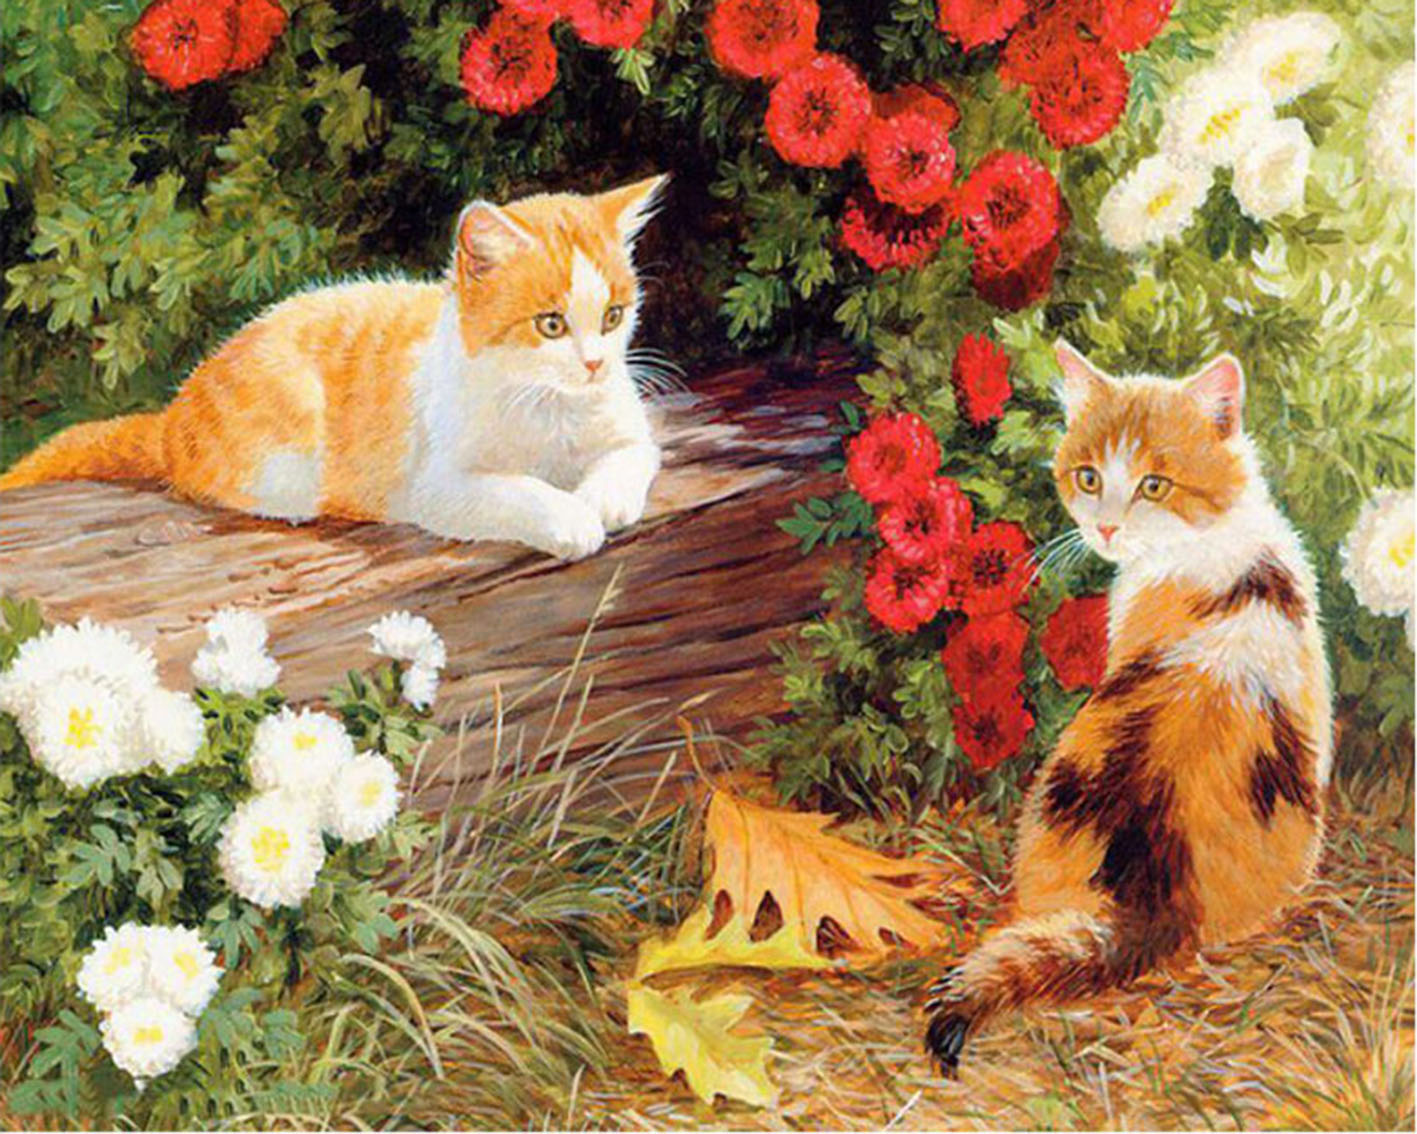 Frameless Picture Two cats Painting By Numbers Modern Wall Art Handpainted Oil On Canvas For Home Decoration